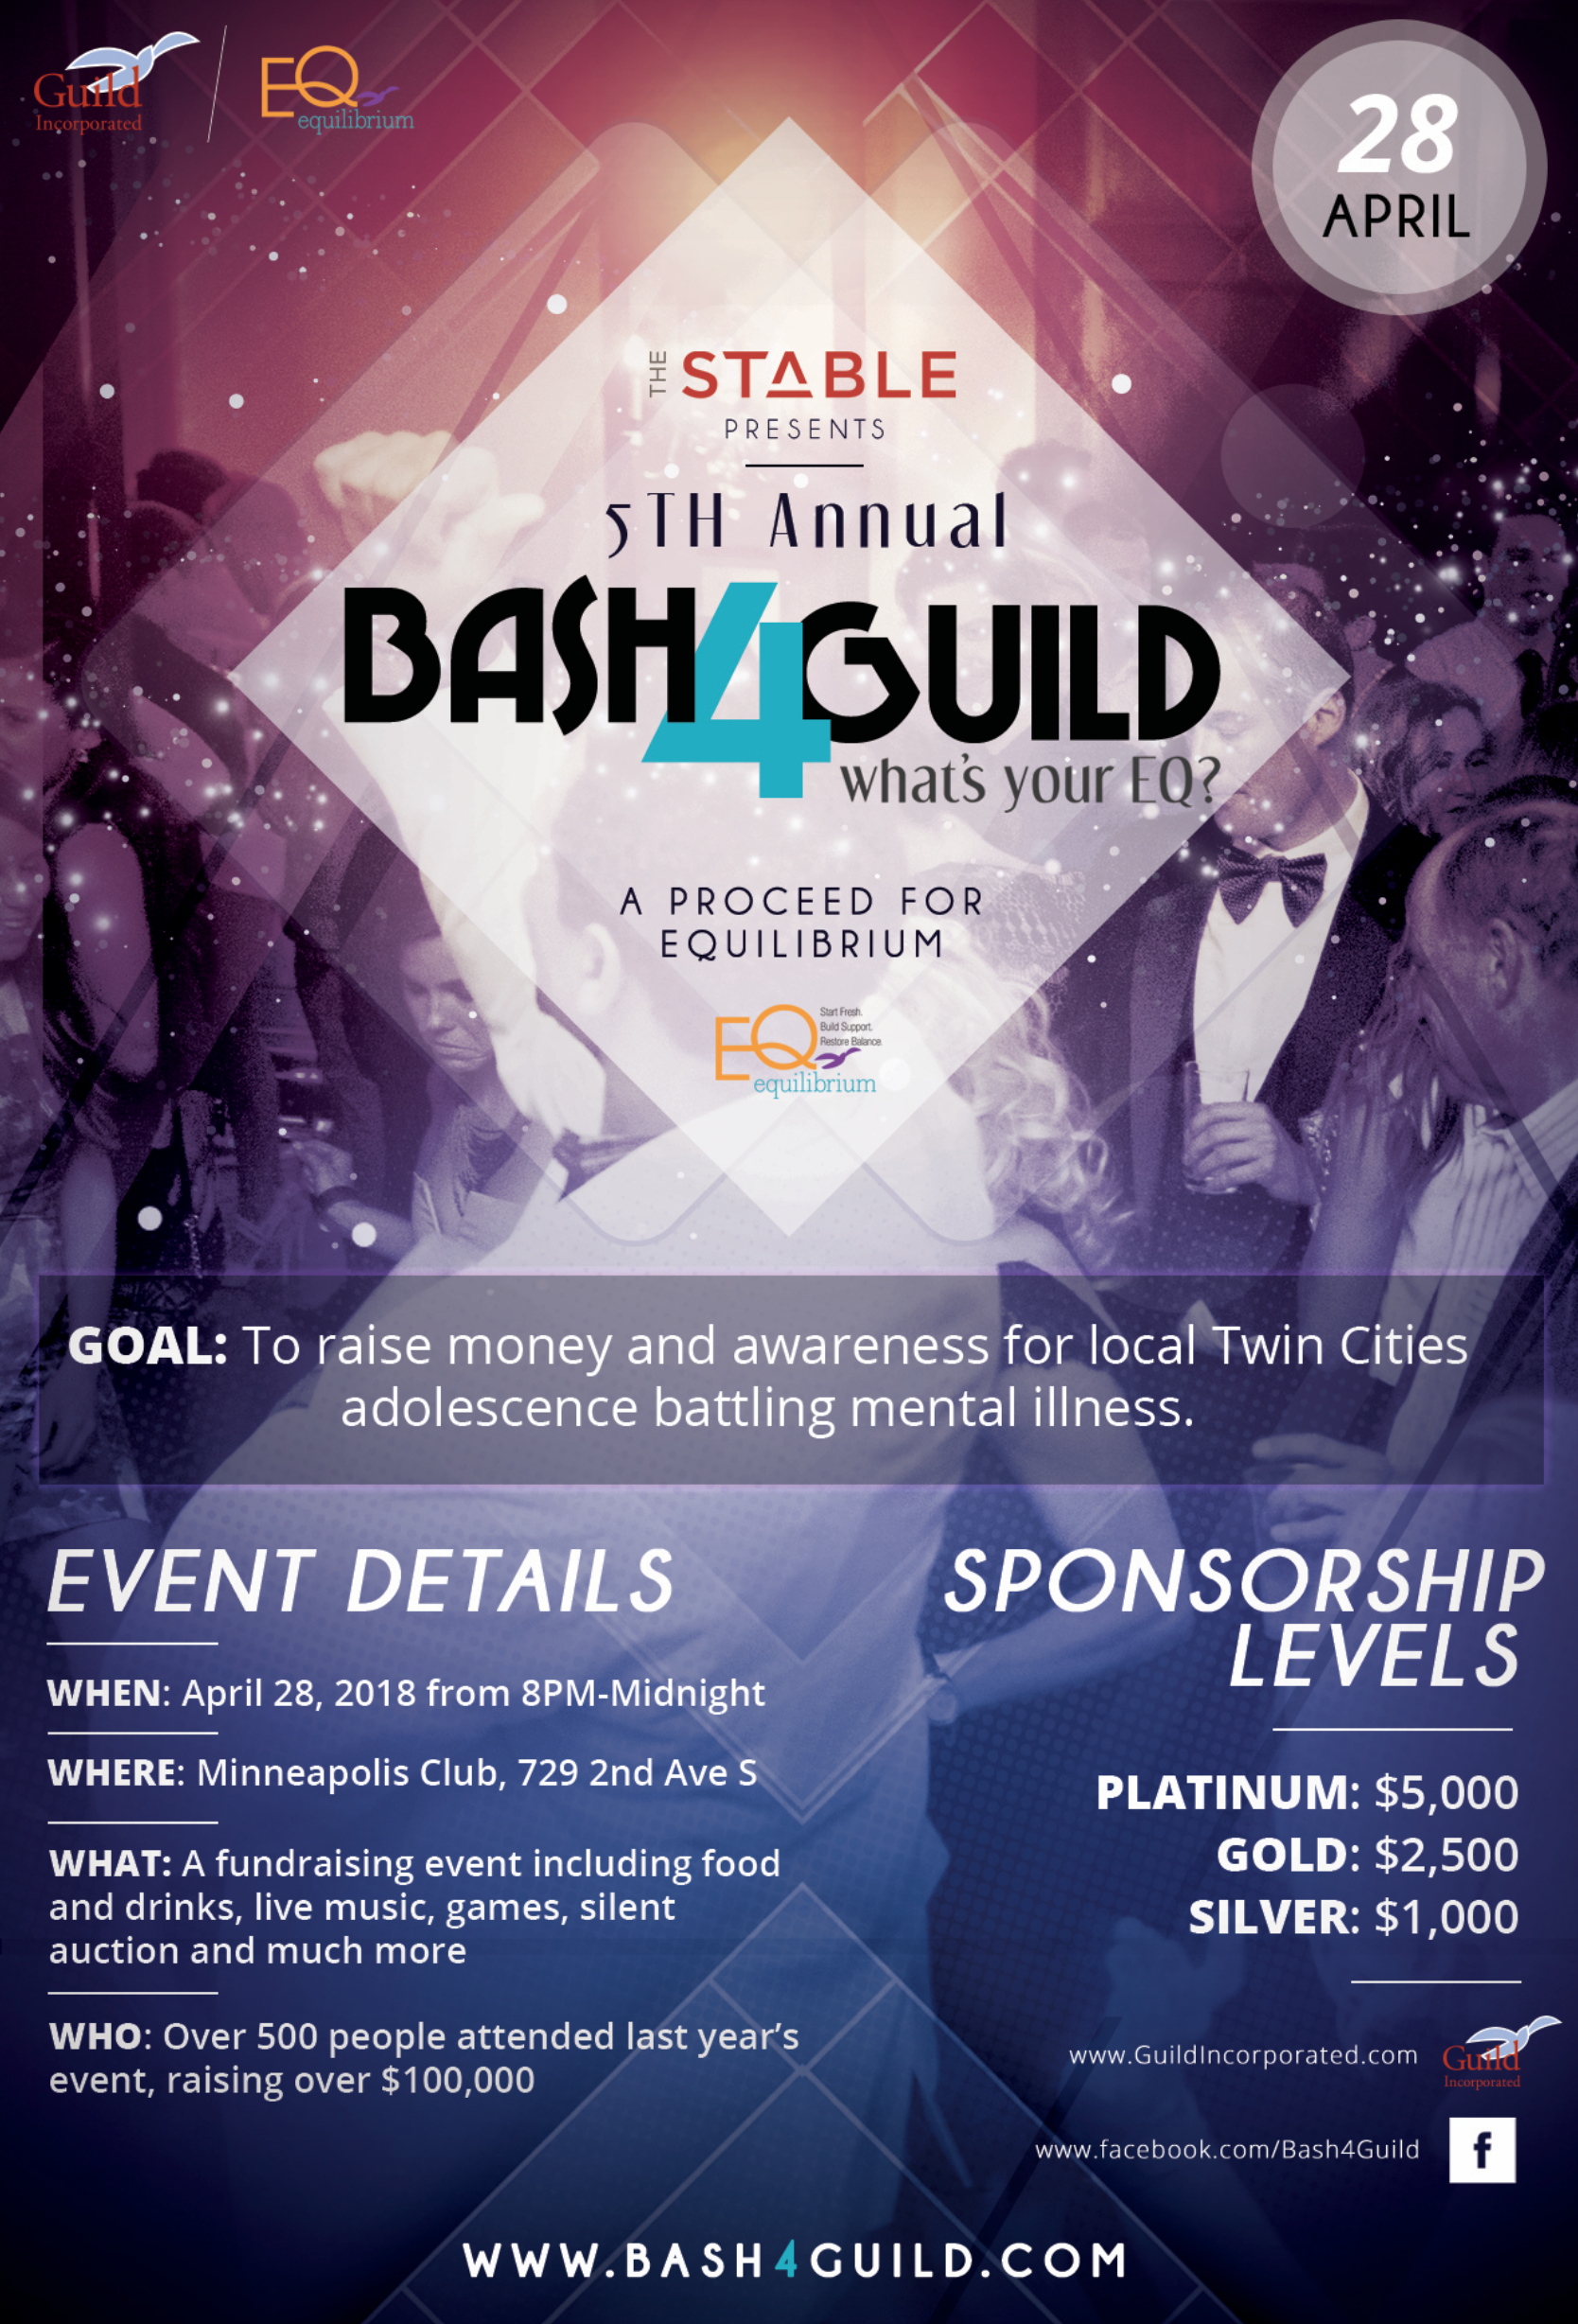 Bash4Guild Event Informational Flyer (front)